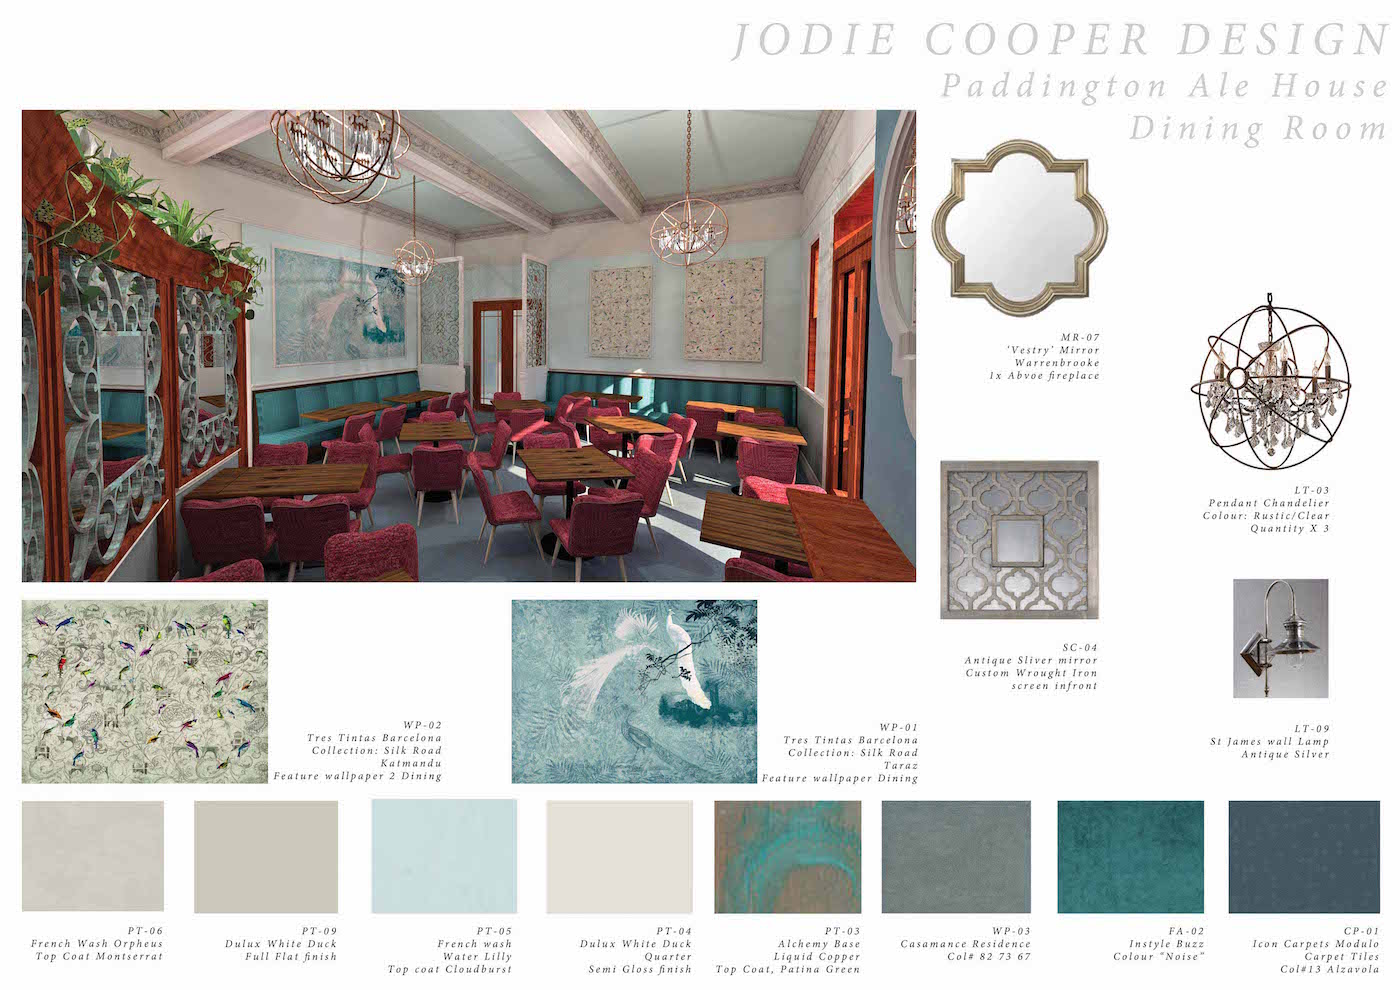 Jodie Cooper Design PAH DINING ROOM